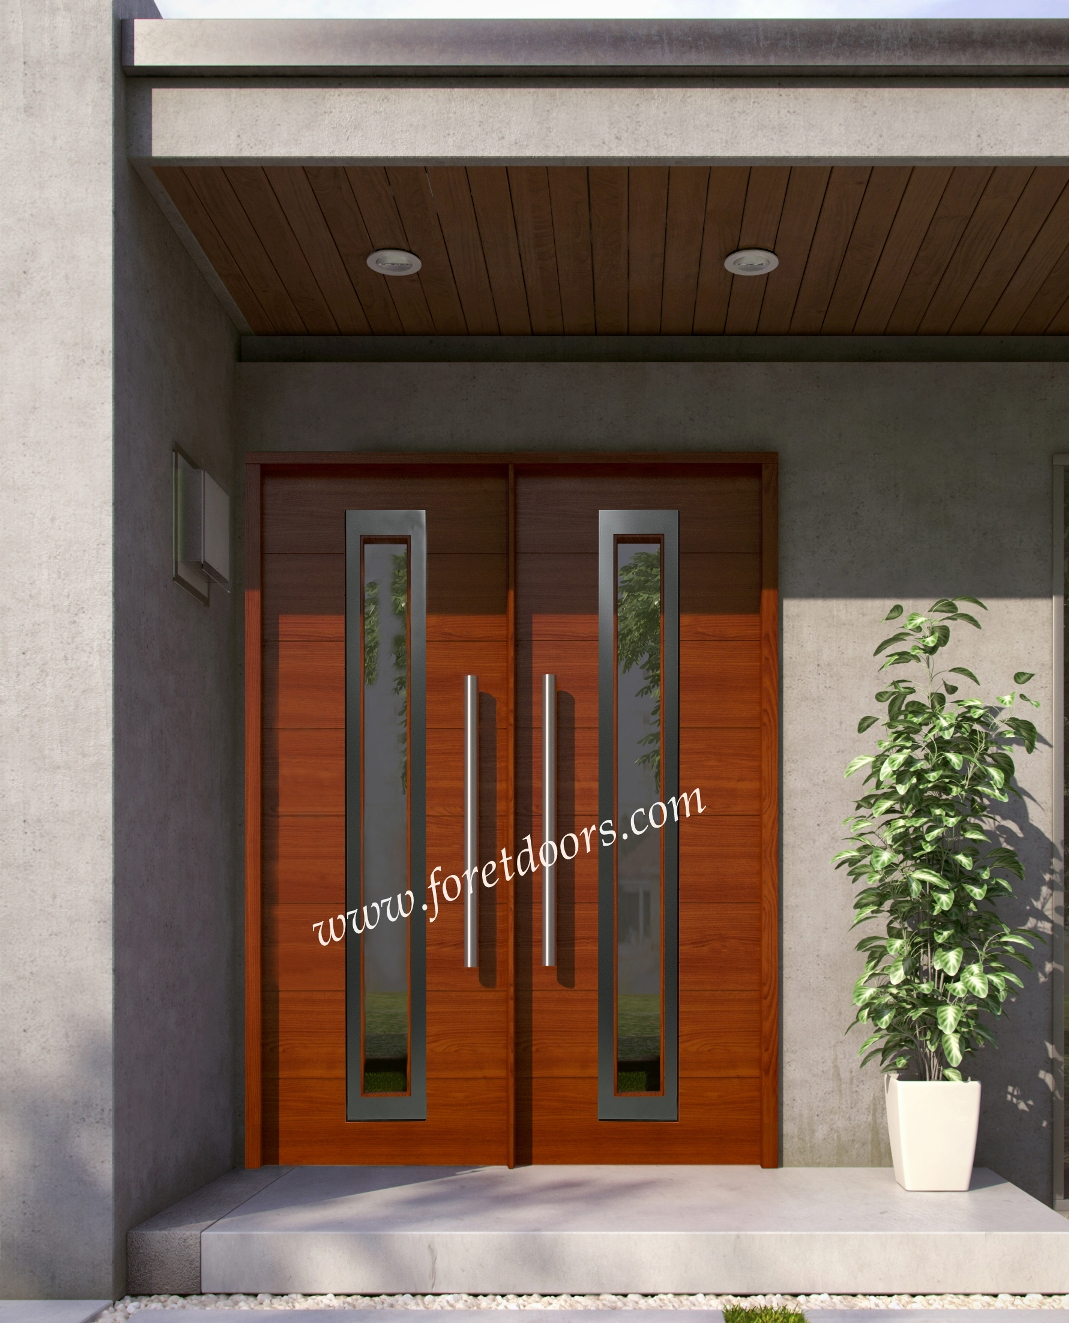 1323 #783414 Wood Front Entry Doors In Stock At A Discount Price By Foret Doors  wallpaper Discount Wood Entry Doors 41651069